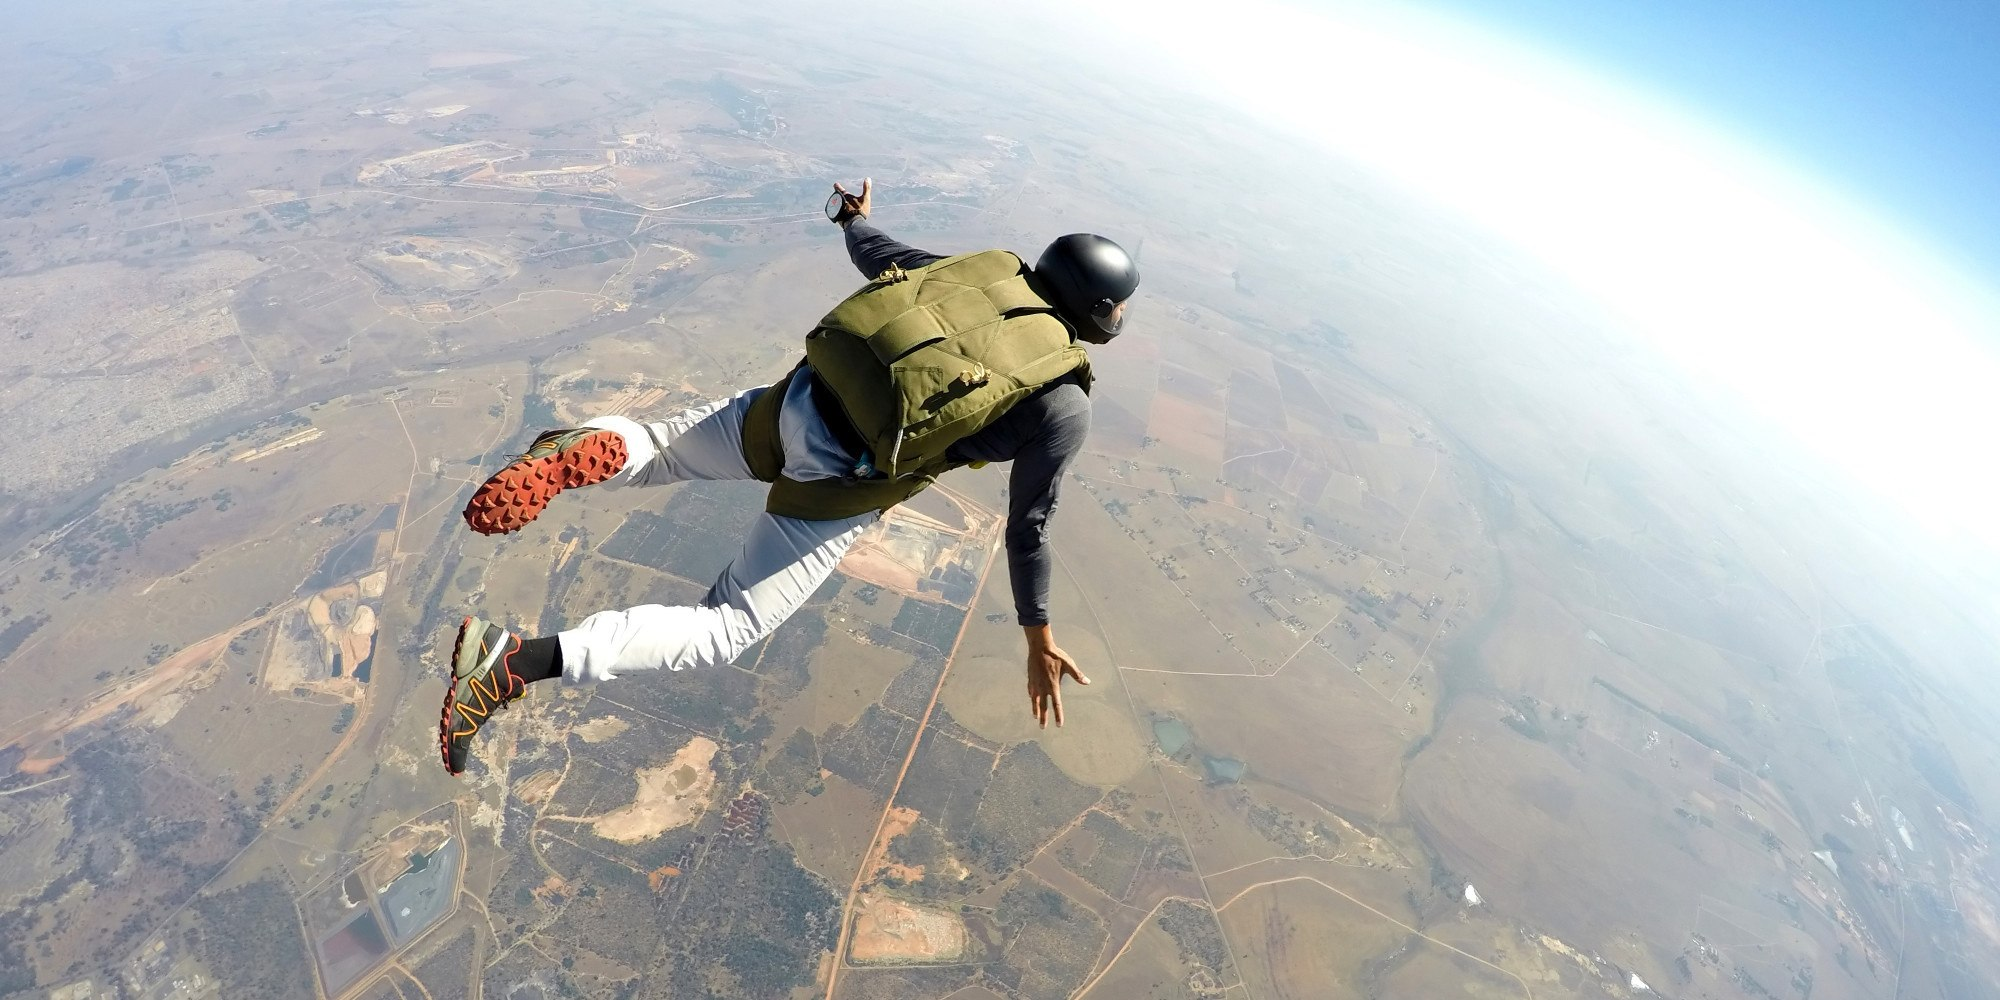 Where are the skydiving places in India? - Quora